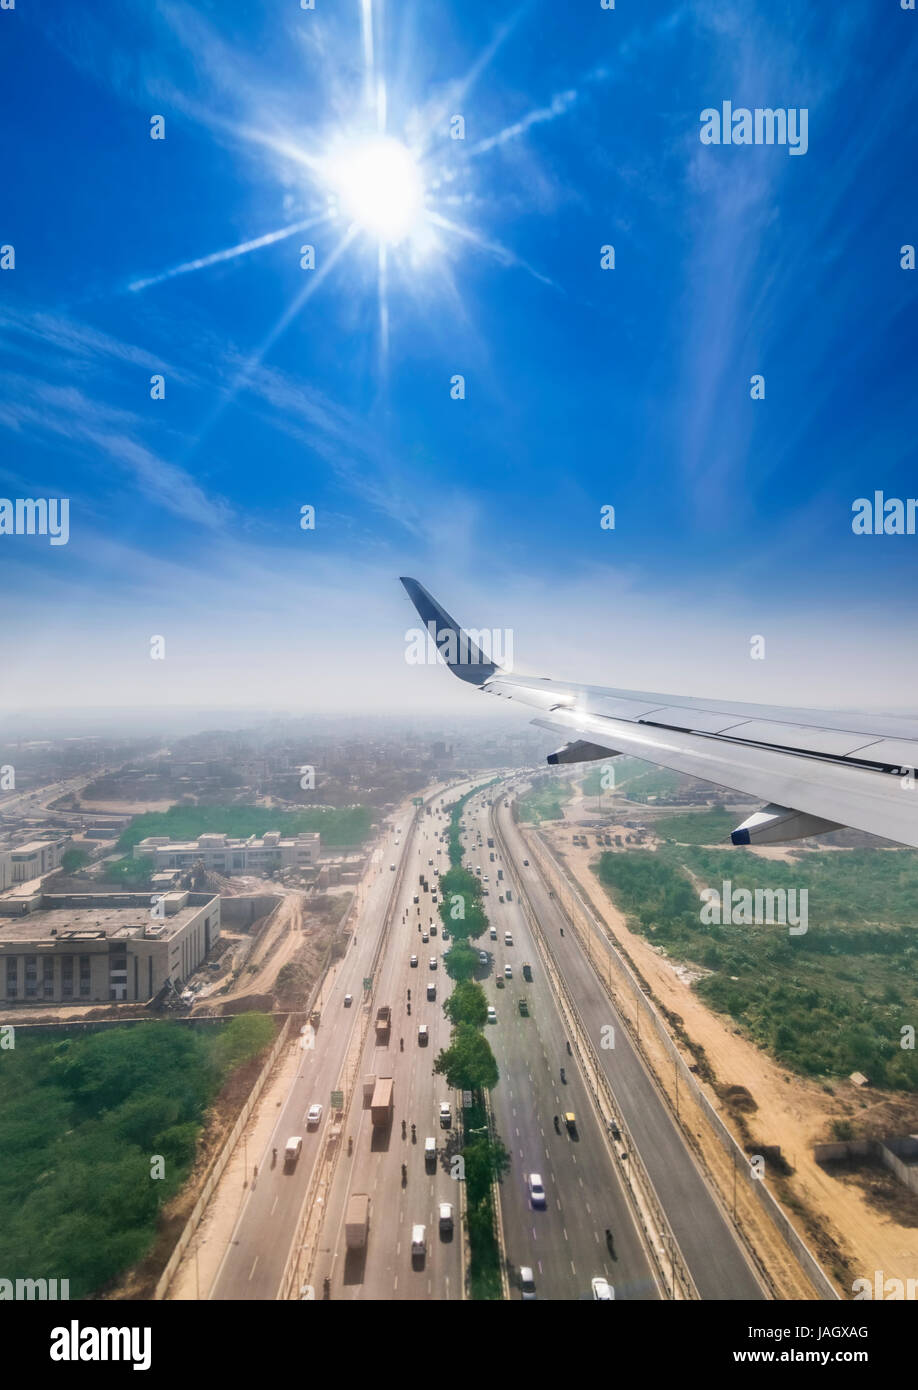 View through the window of a passenger plane flying above Delhi Gurgaon highway, taken just a minute before landing - Stock Image